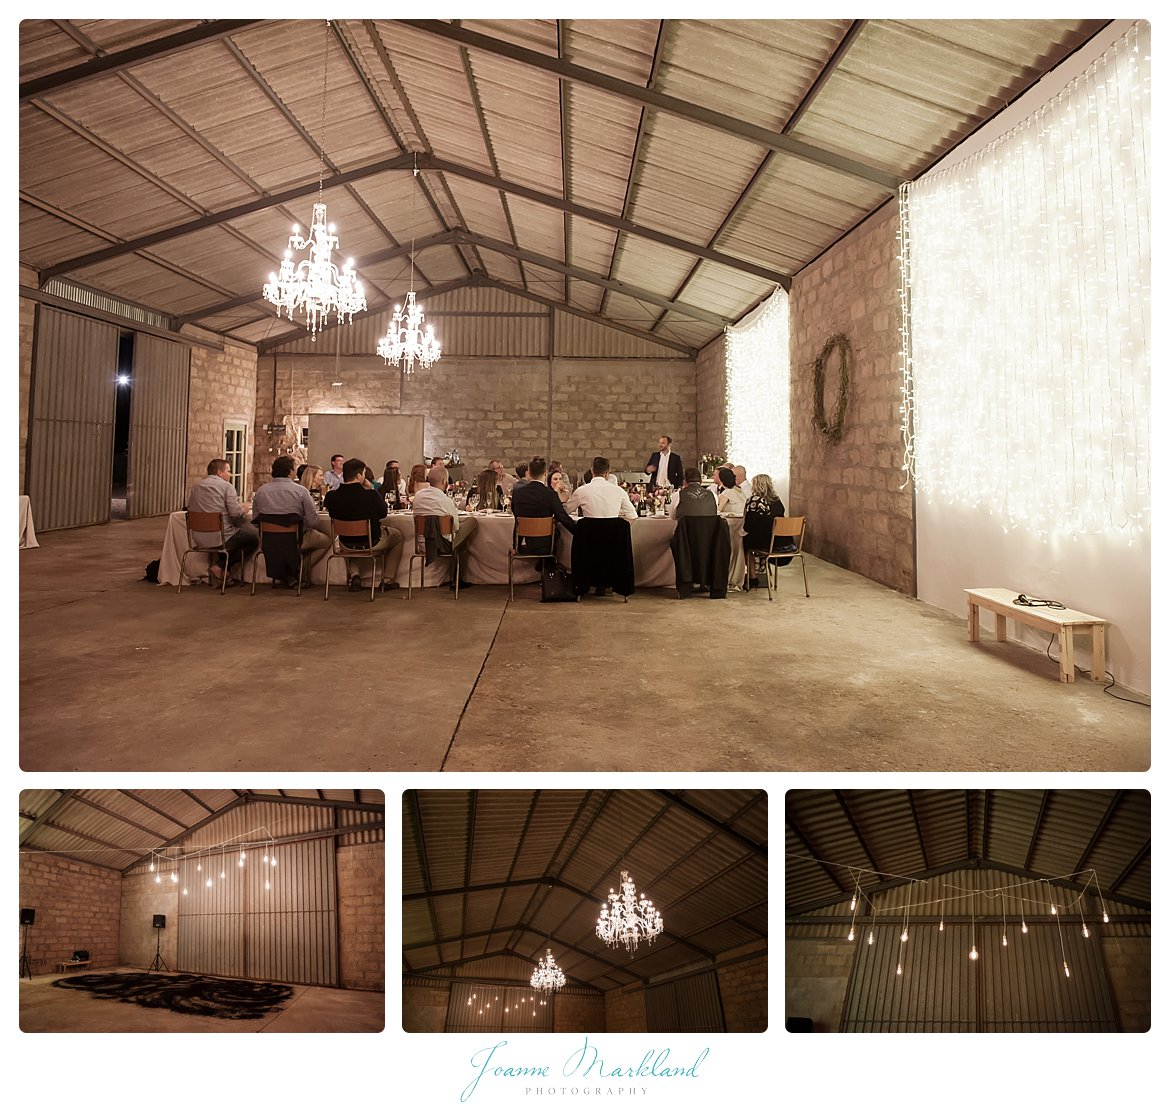 boorwater-wedding-hopefield-west-coast-cape-town-joanne-markland-photography-049